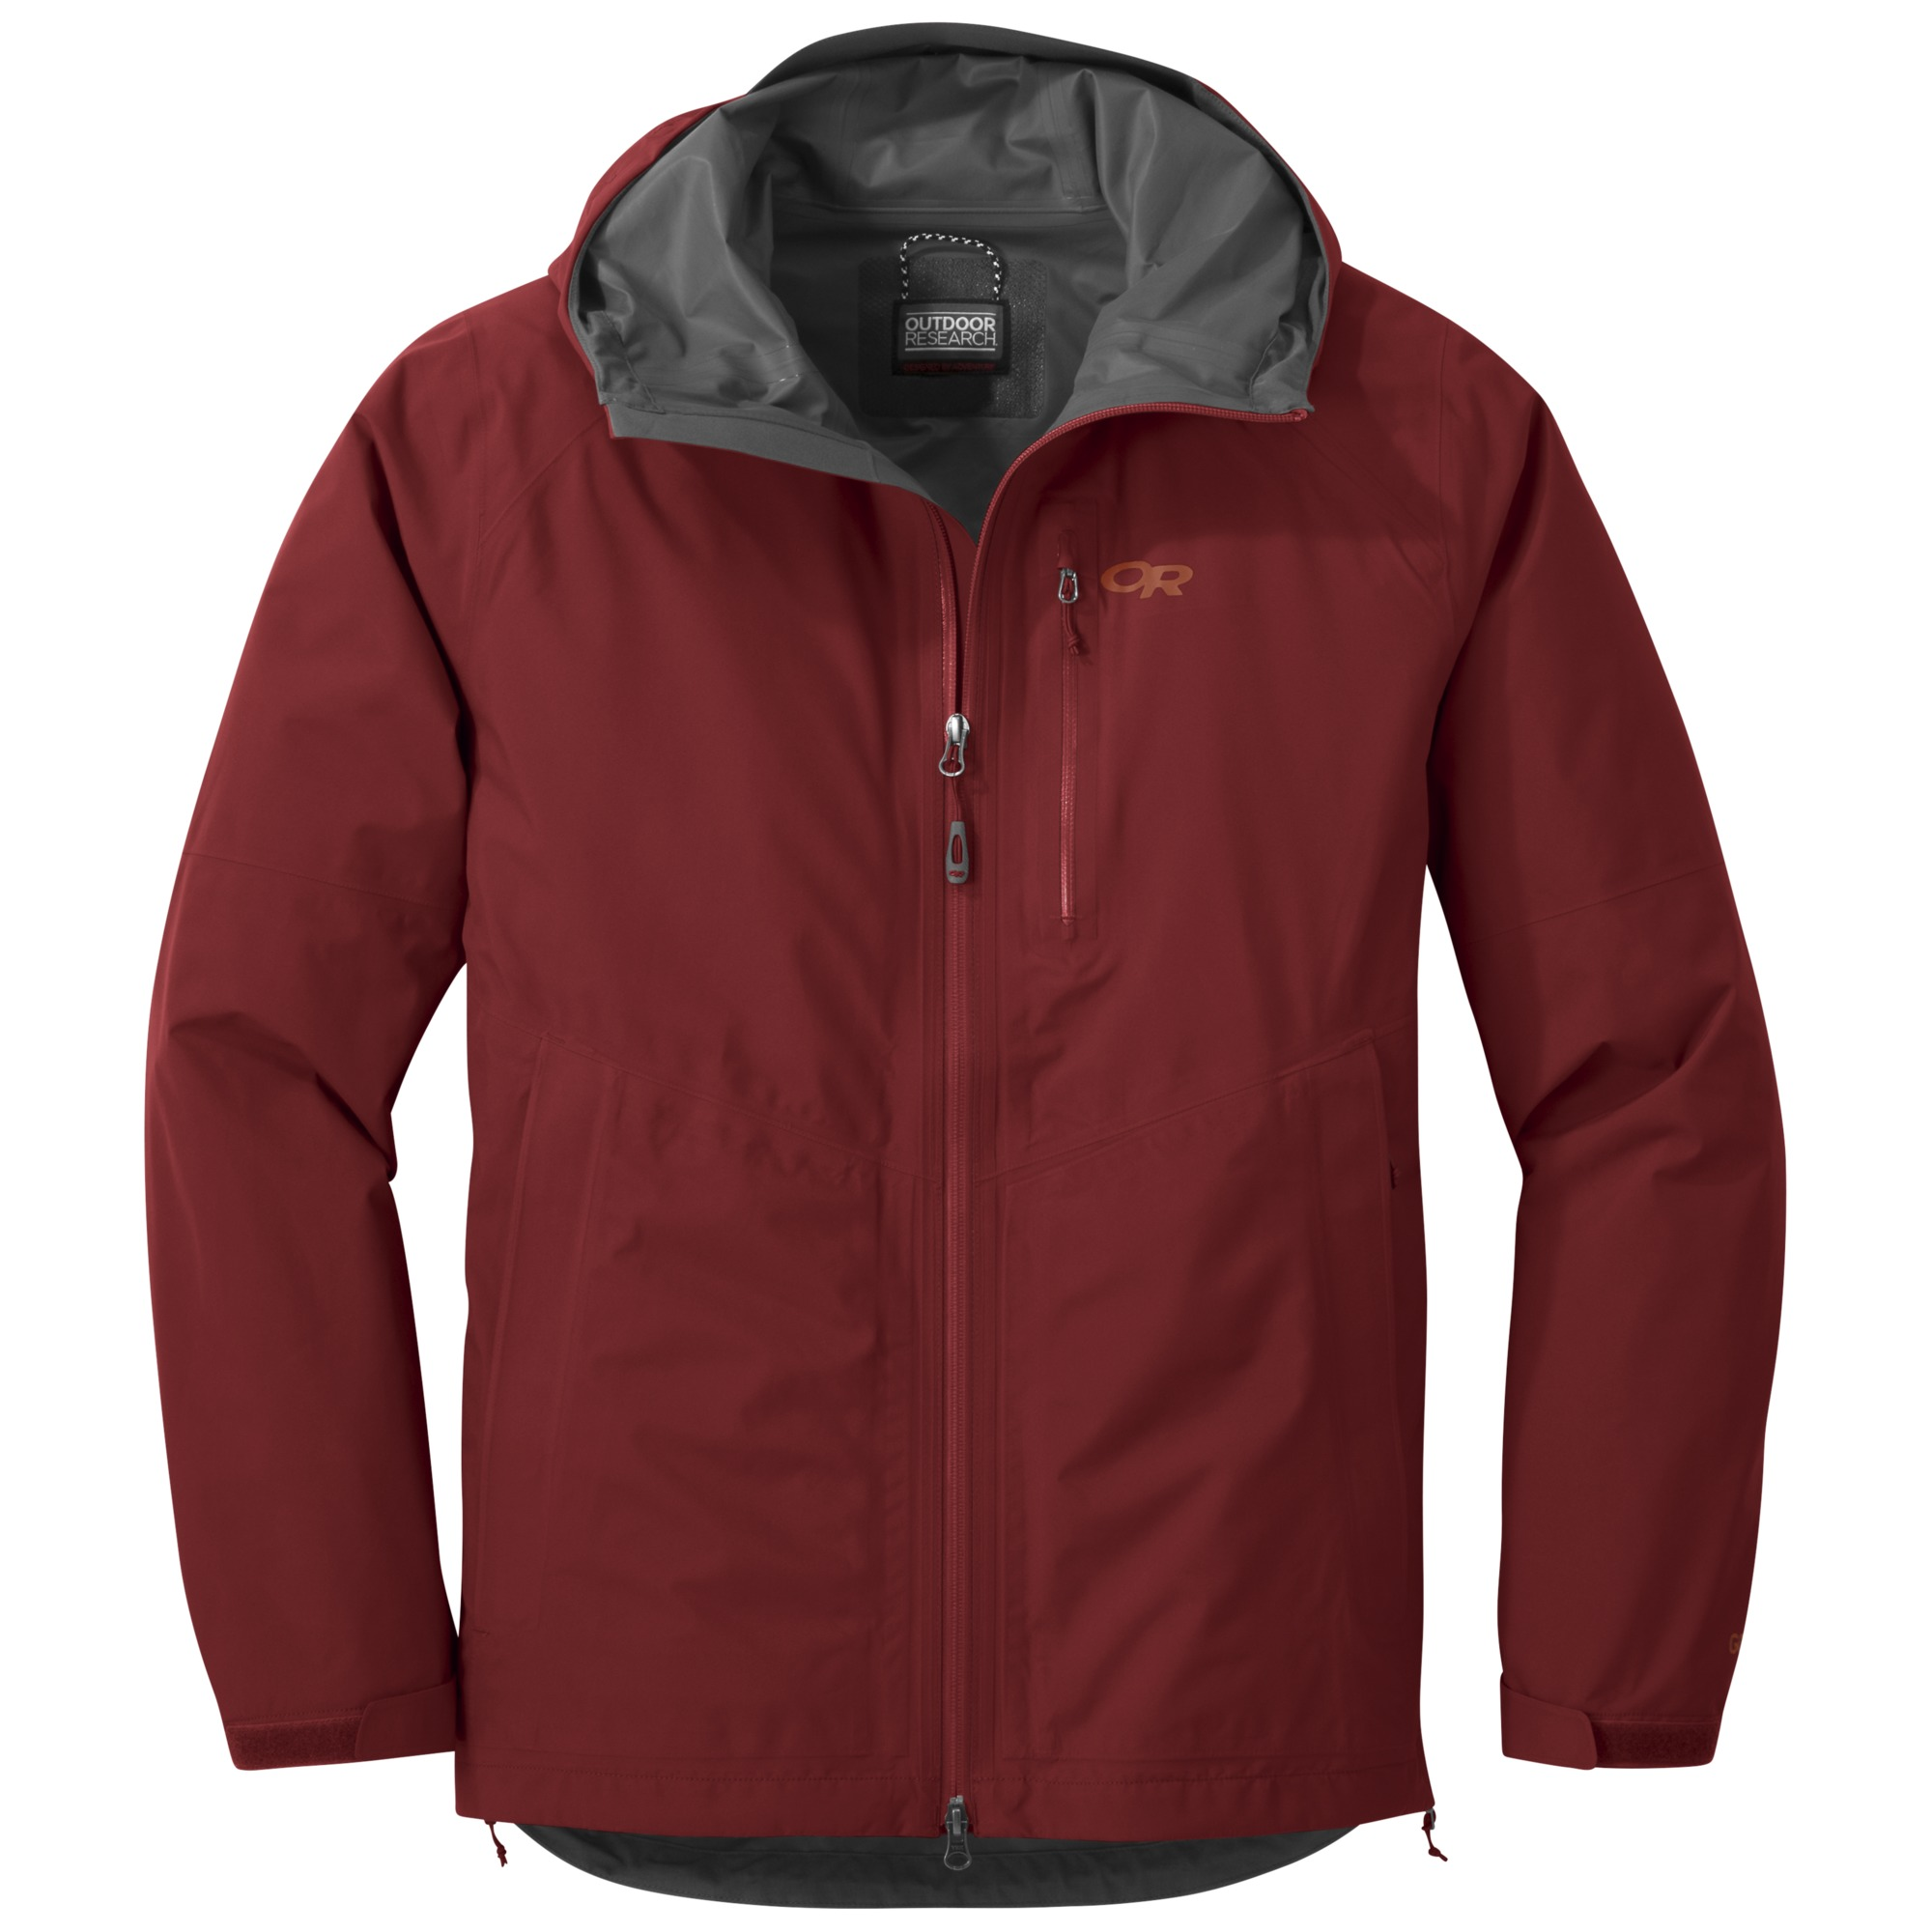 a3e19ccd829 Men's Foray Jacket - firebrick | Outdoor Research